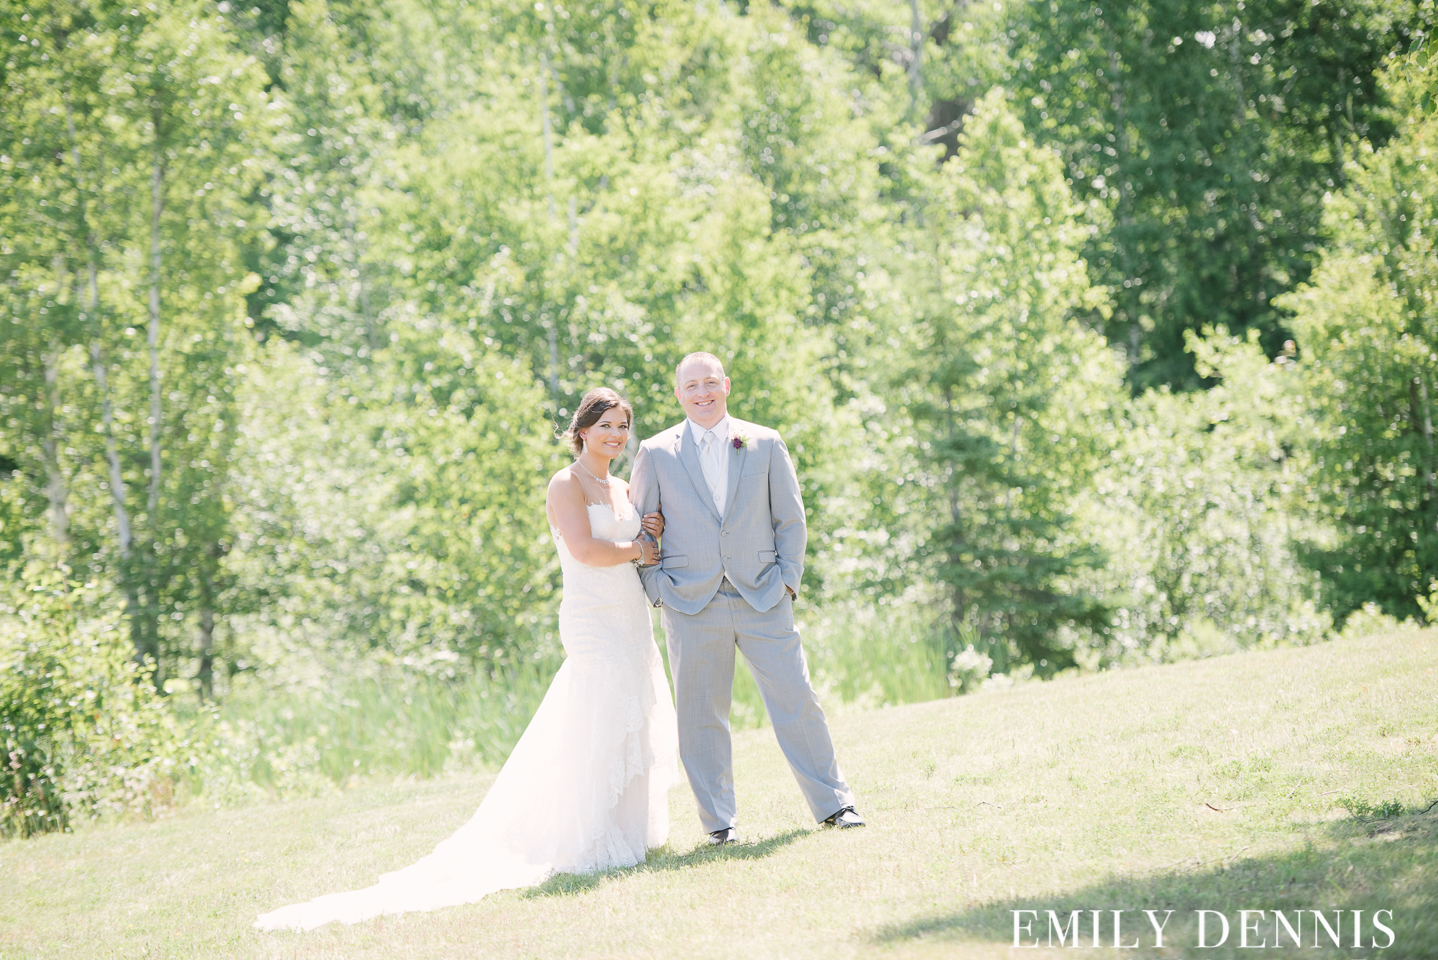 EMILY_DENNIS_PHOTOGRAPHY-29